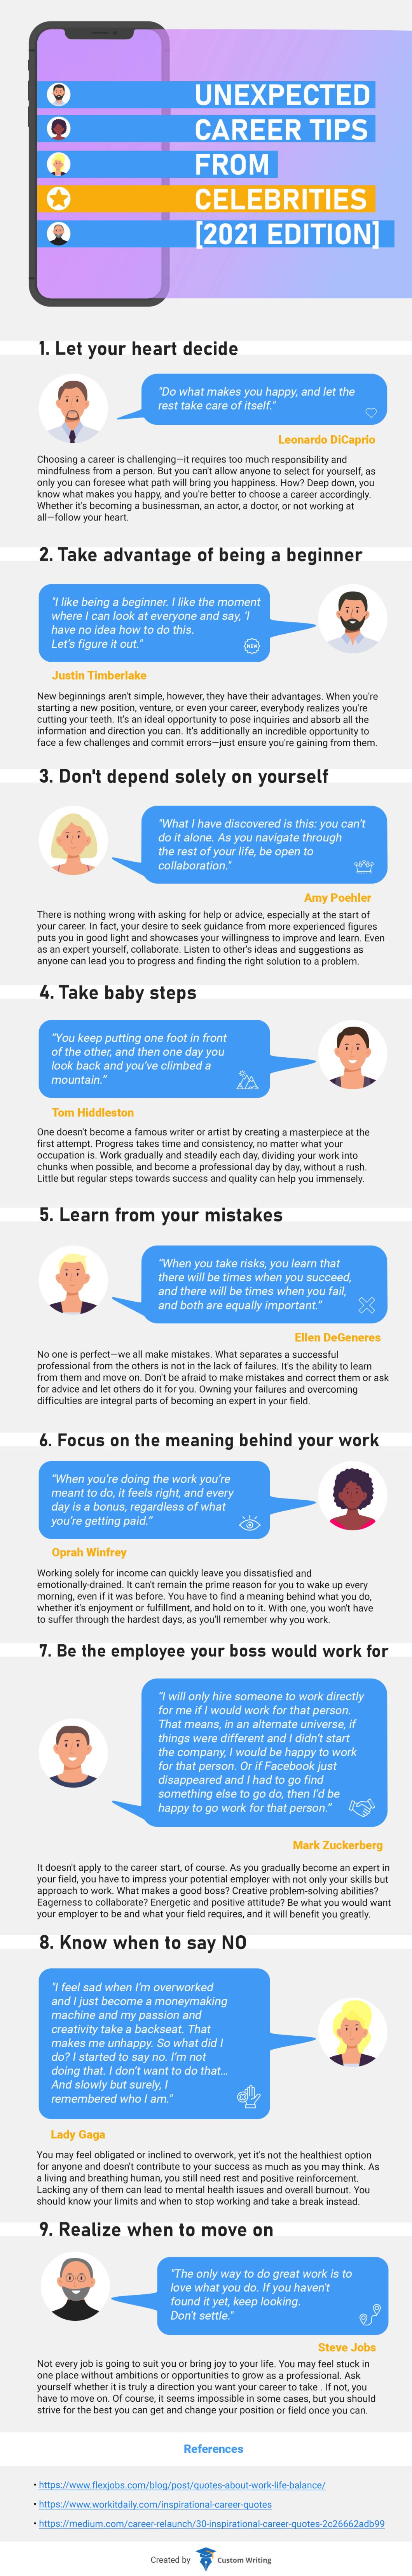 Unexpected Career Tips from Celebrities - Infographic